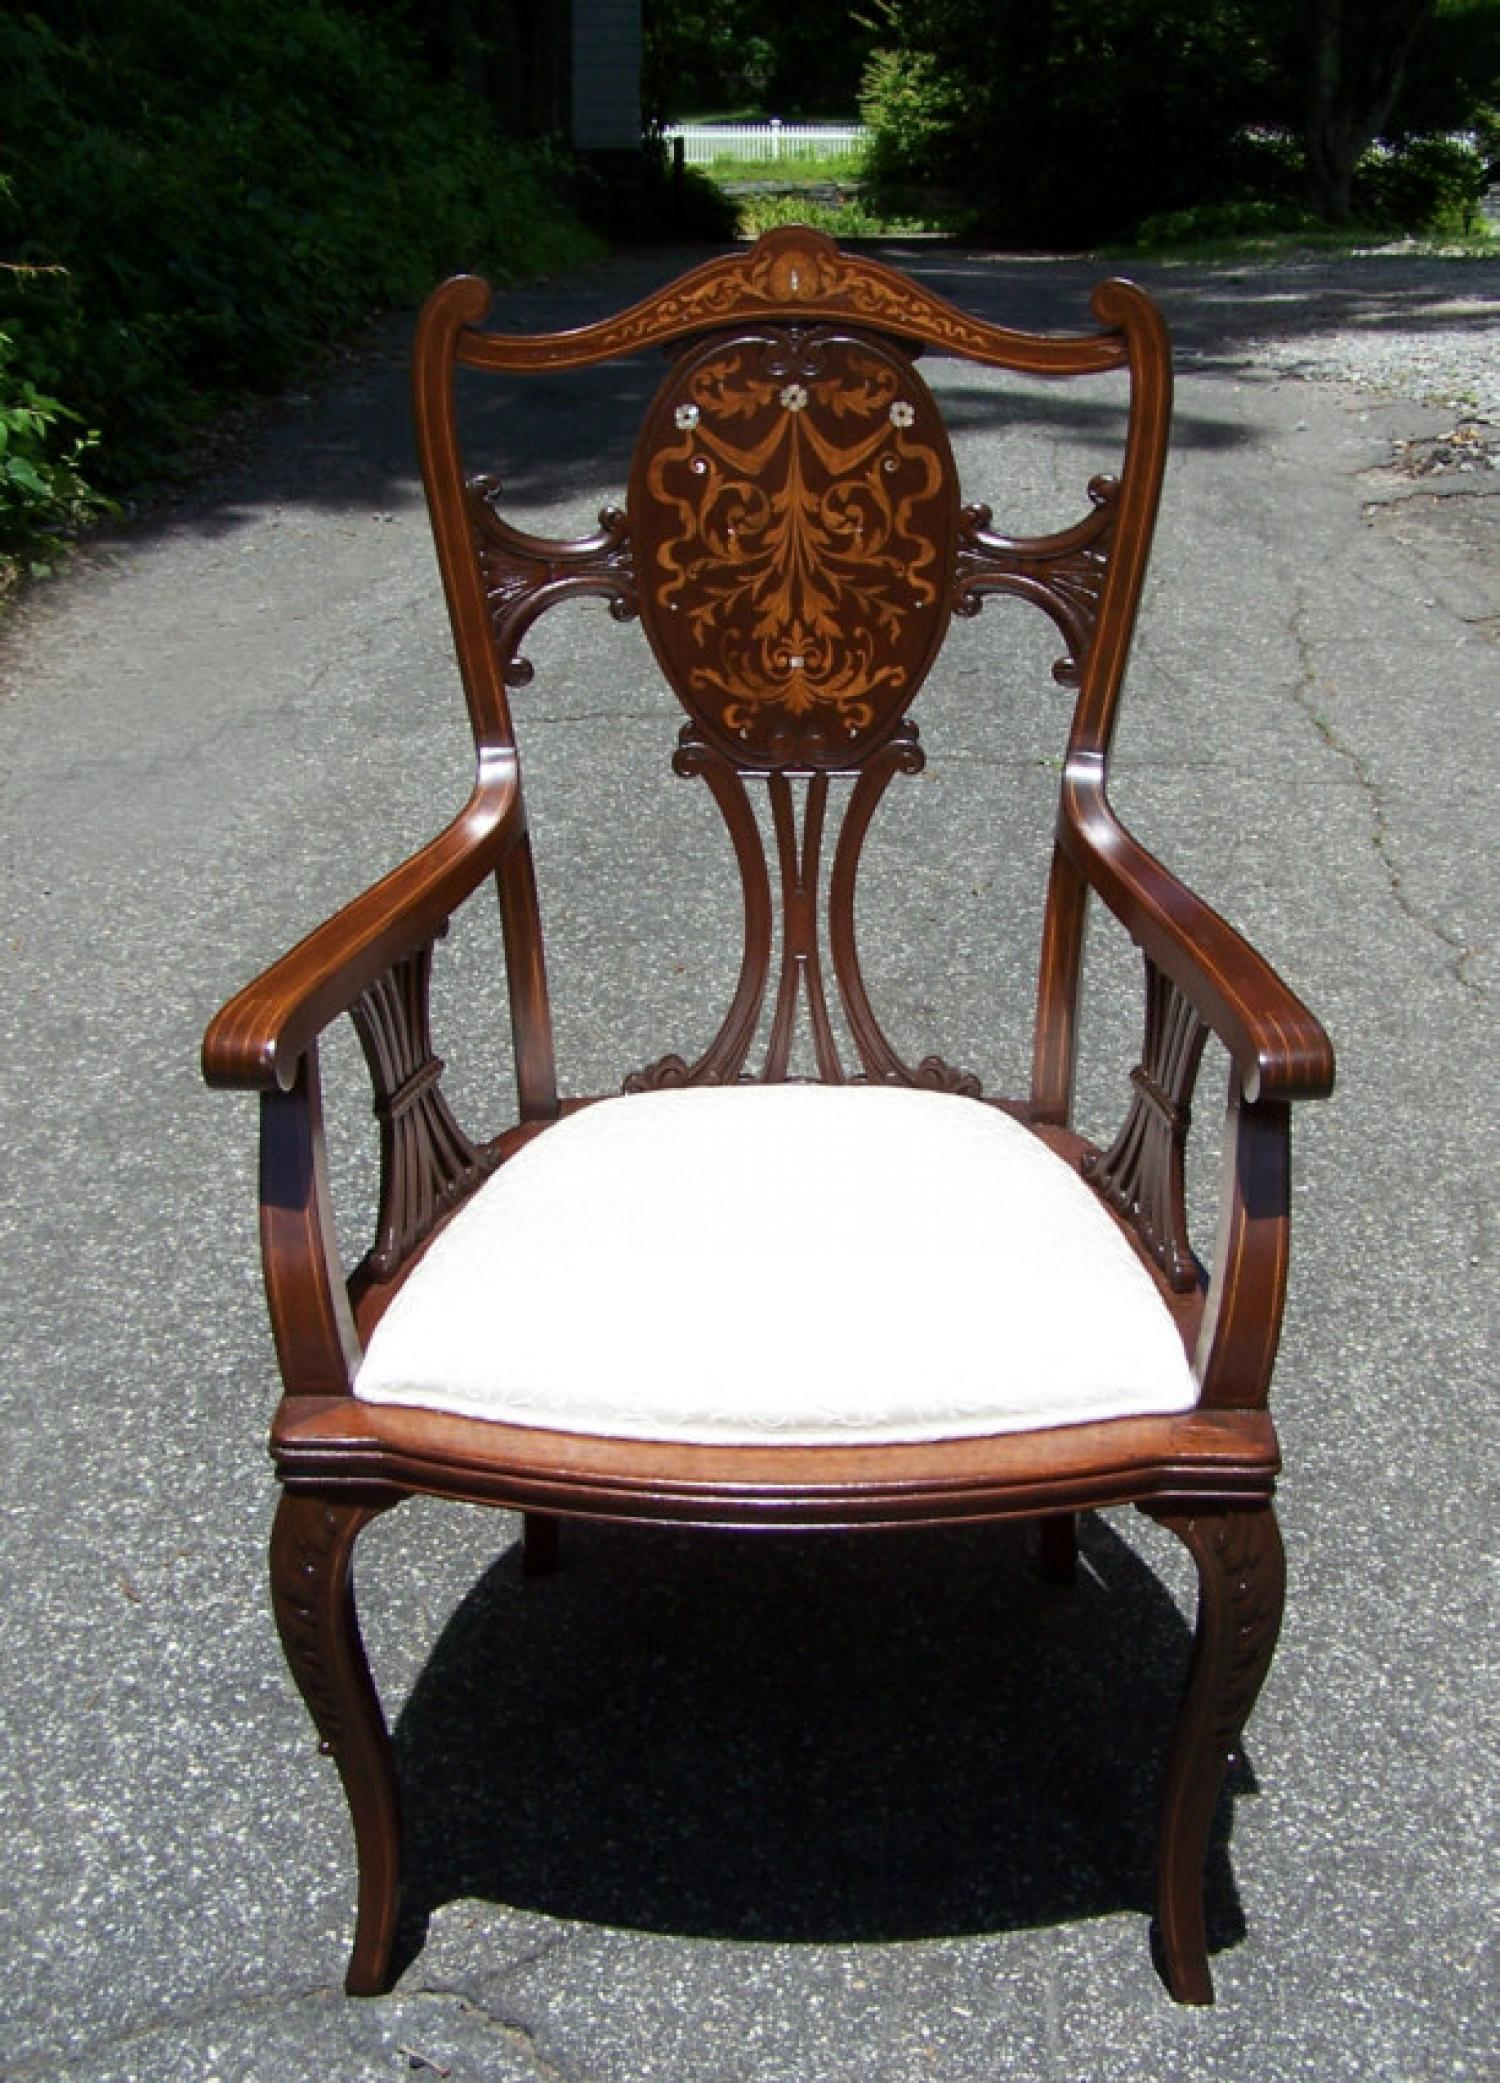 R J Horner inlaid mahogany desk chair c1885